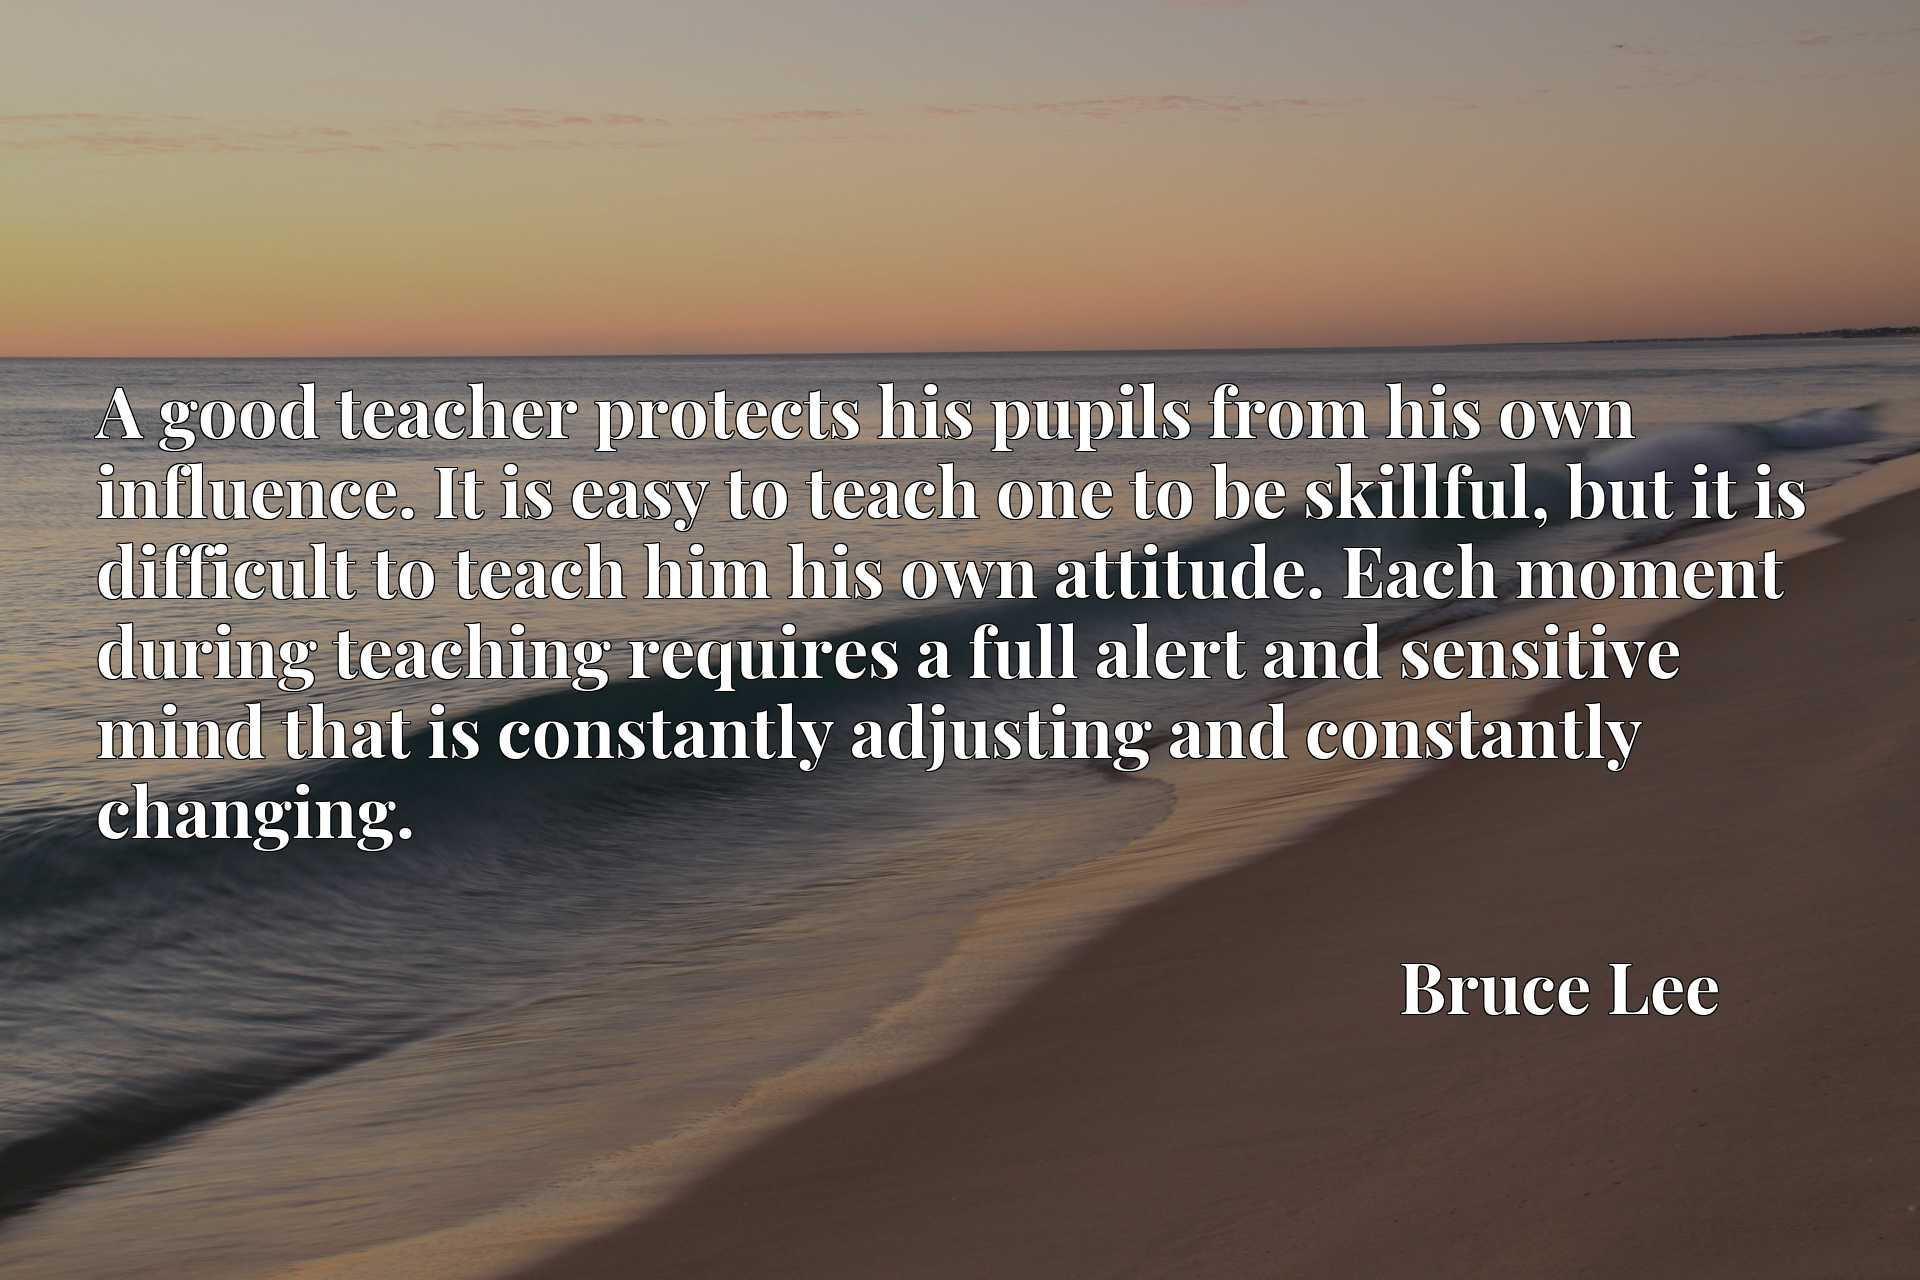 A good teacher protects his pupils from his own influence. It is easy to teach one to be skillful, but it is difficult to teach him his own attitude. Each moment during teaching requires a full alert and sensitive mind that is constantly adjusting and constantly changing.